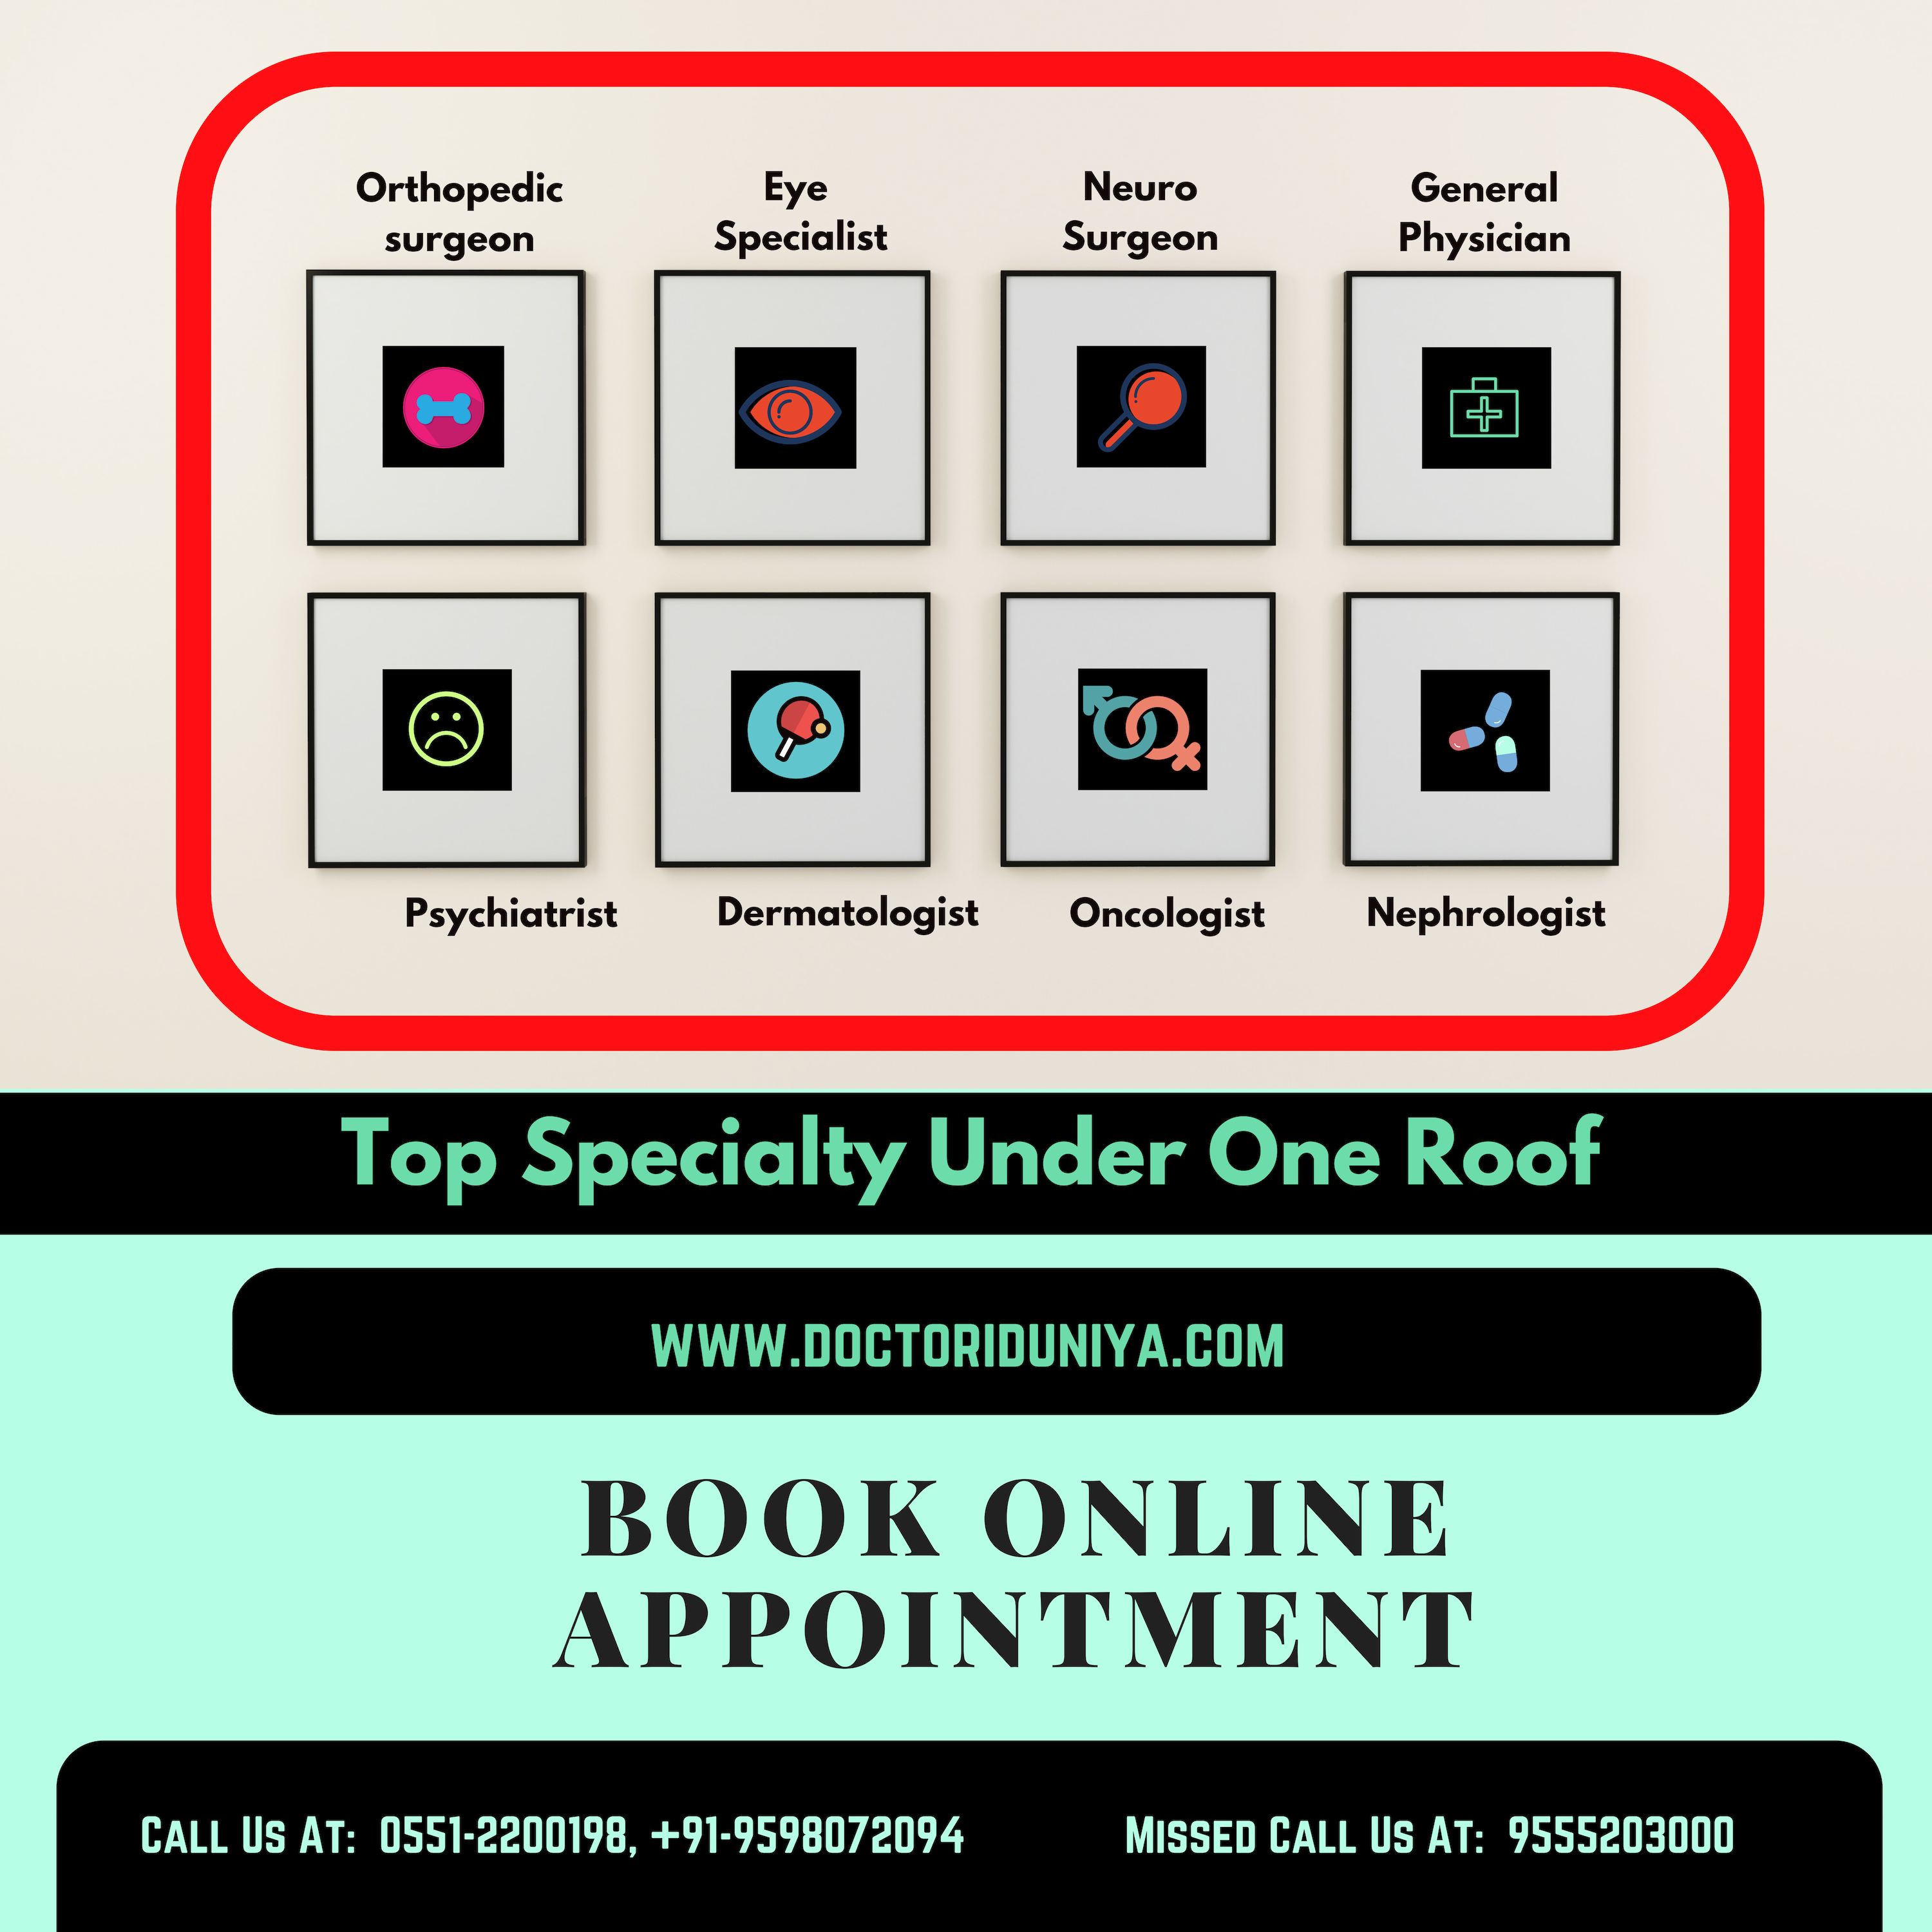 Top Specialty Under One Roof Book online appointment at